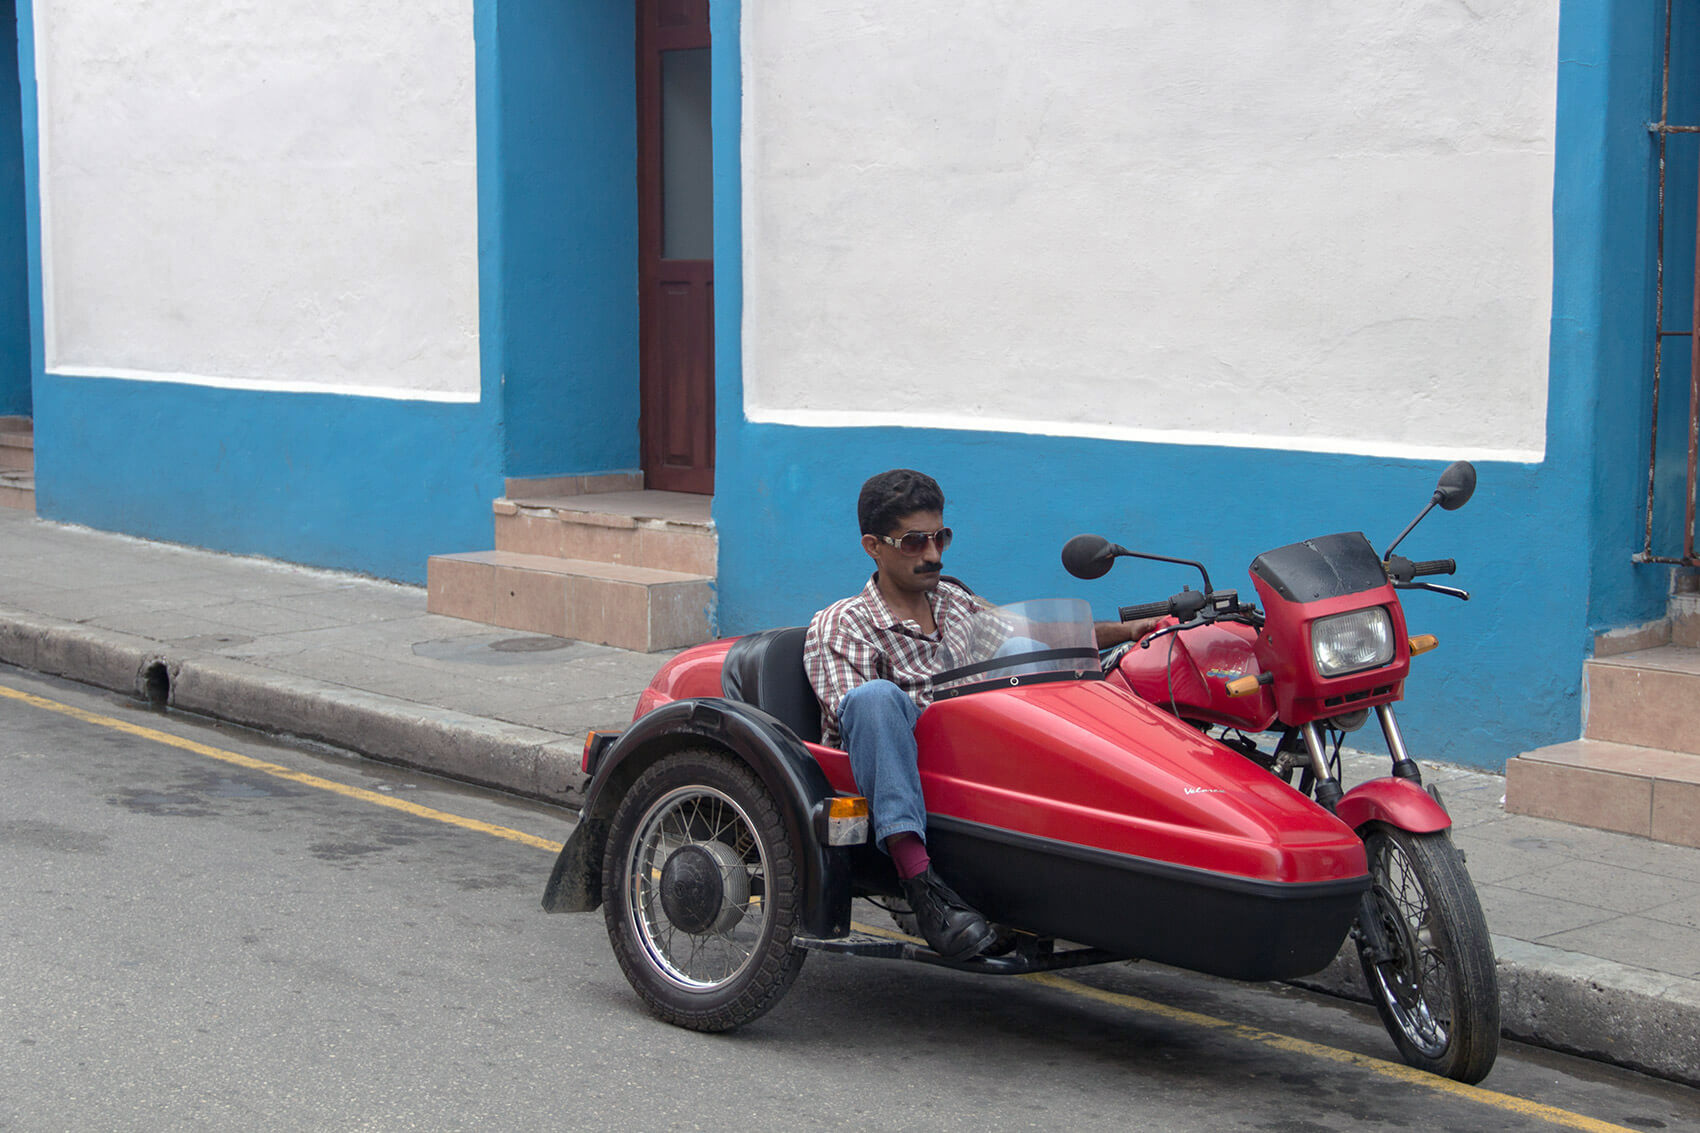 Guy in sidecar in Camagüey